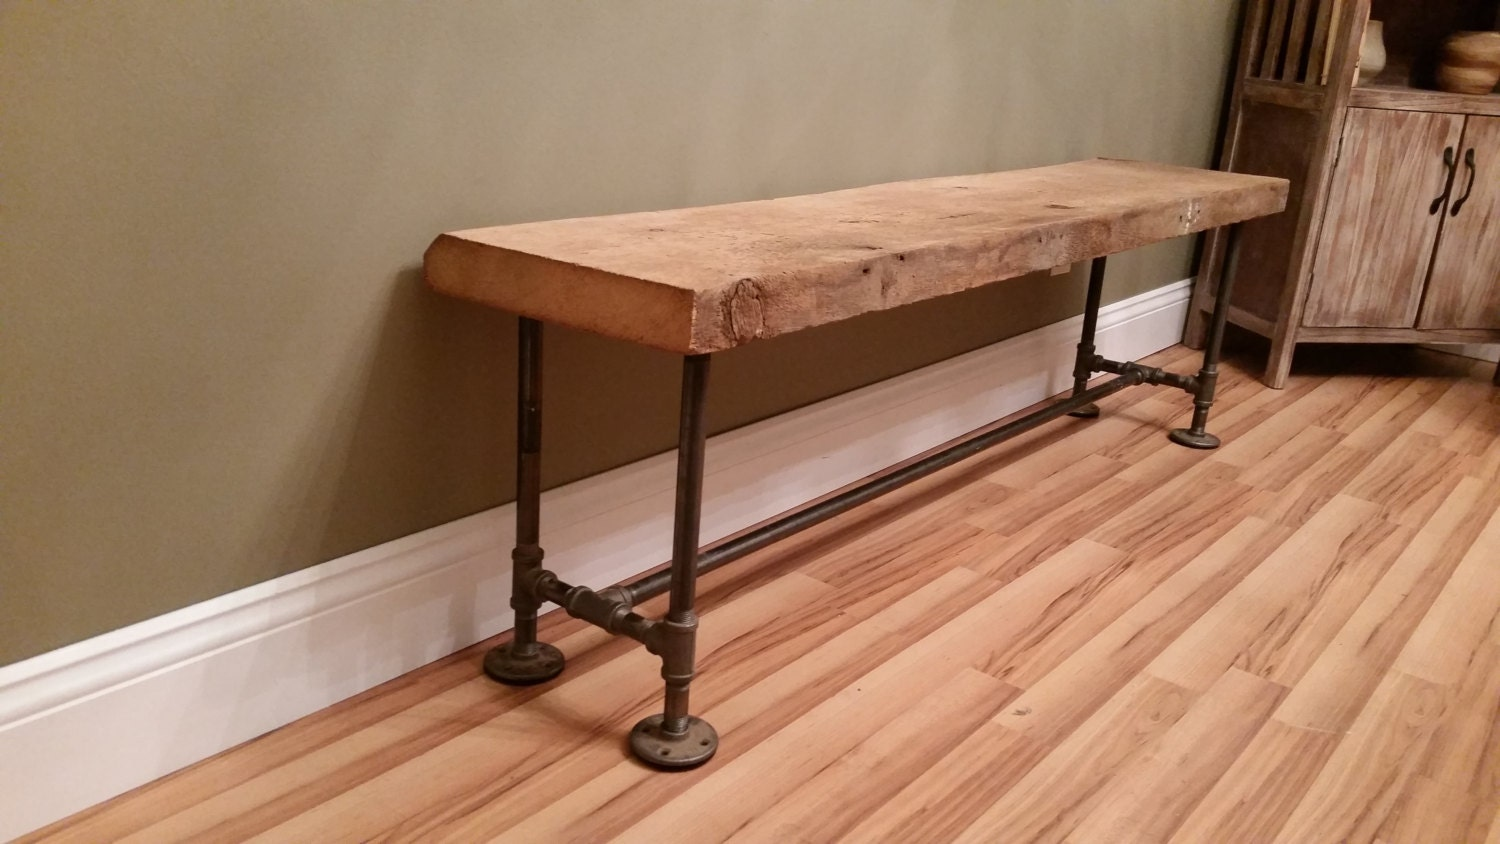 Free Shipping Barn Wood Rustic Bench 4 Foot By Thepinktoolbox